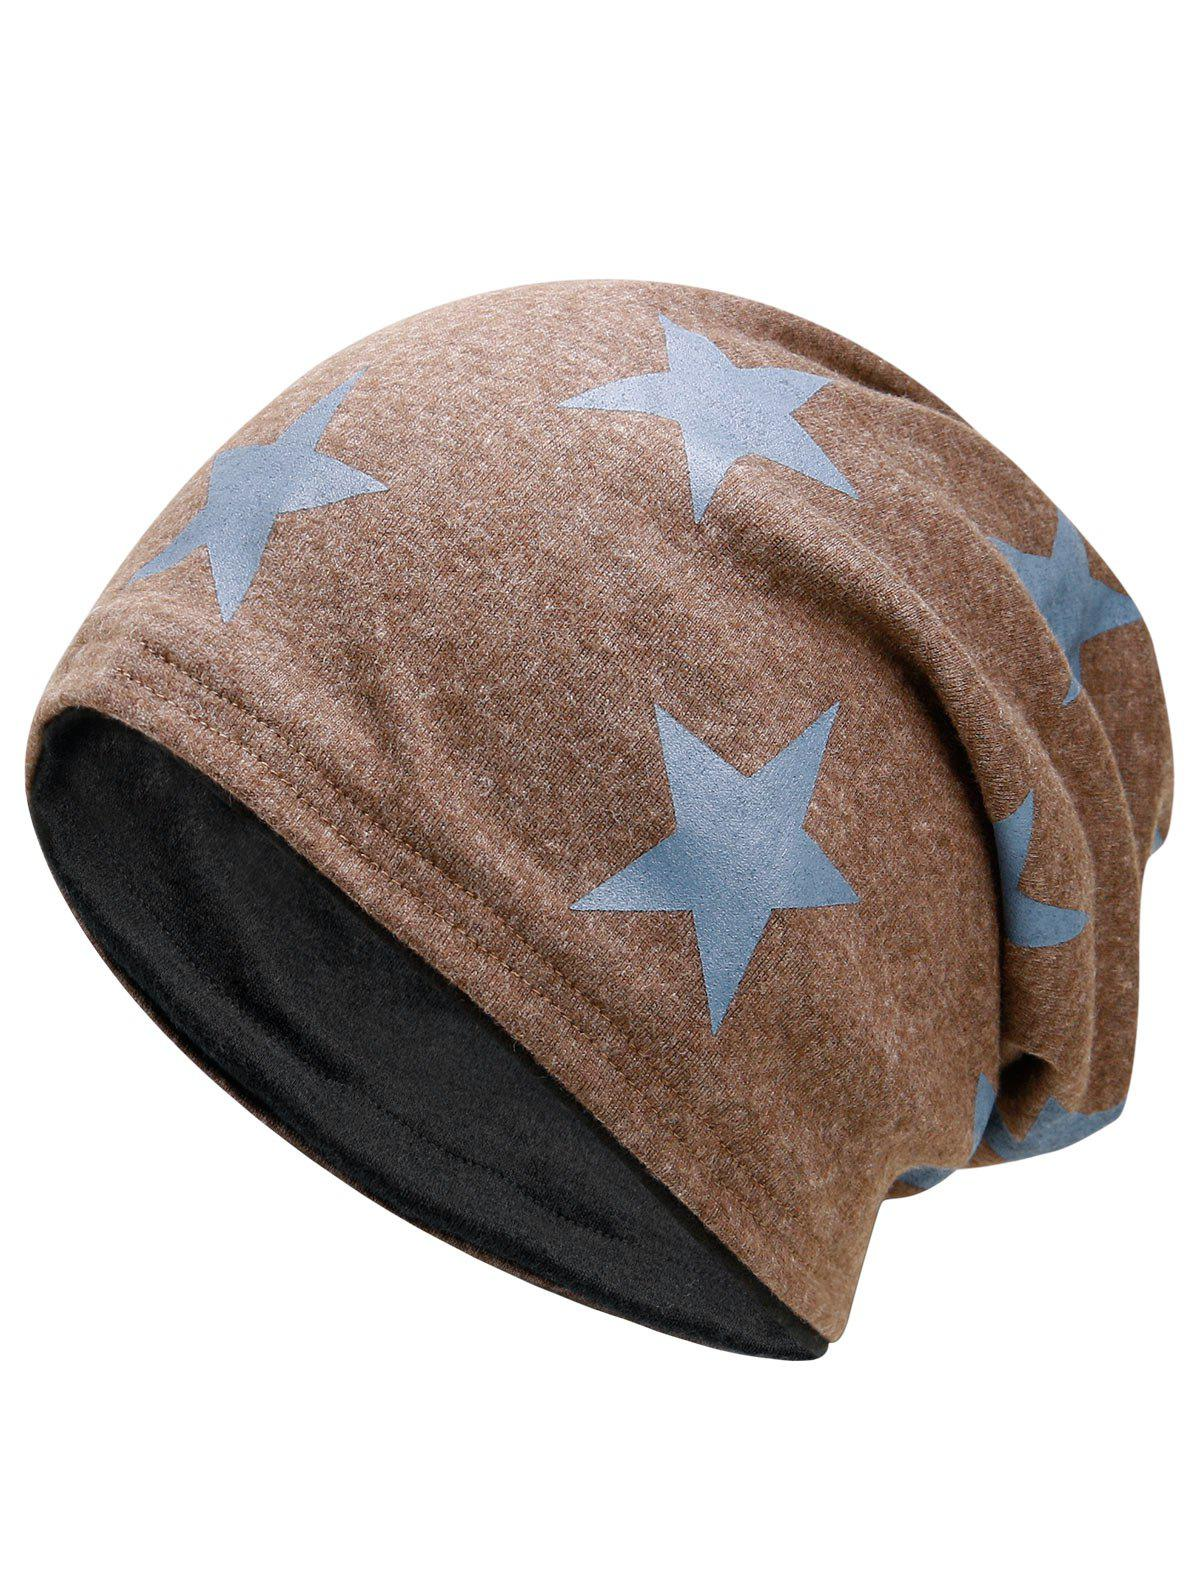 Outdoor Star Pattern Embellished Reversible Lightweight BeanieACCESSORIES<br><br>Color: KHAKI; Hat Type: Skullies Beanie; Group: Adult; Gender: For Men; Style: Fashion; Pattern Type: Star; Material: Polyester; Weight: 0.1200kg; Package Contents: 1 x Hat;